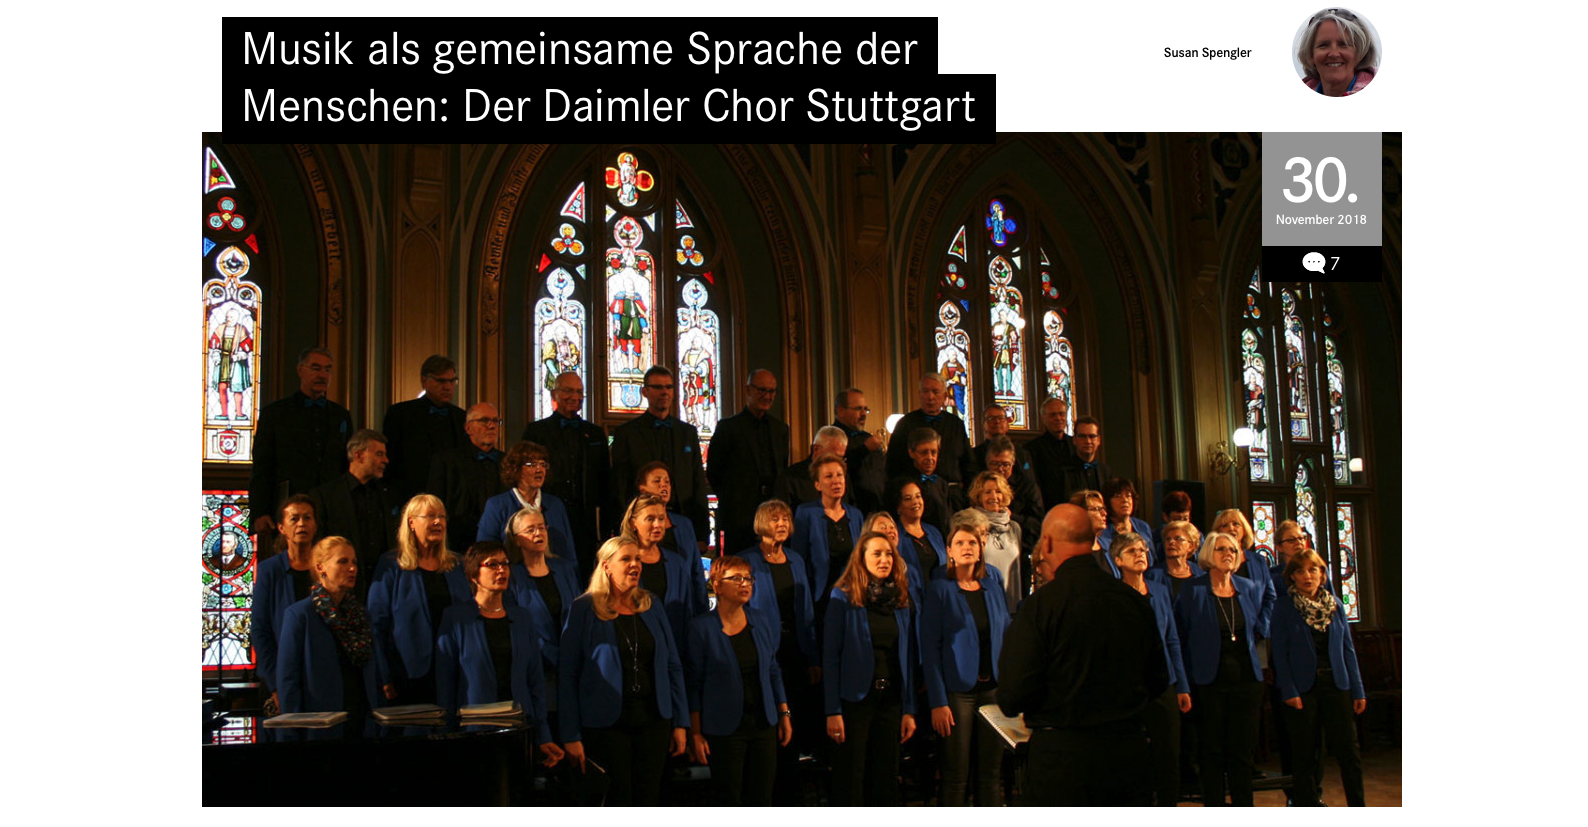 daimler-chor-musik-content-marketing-sotrytelling